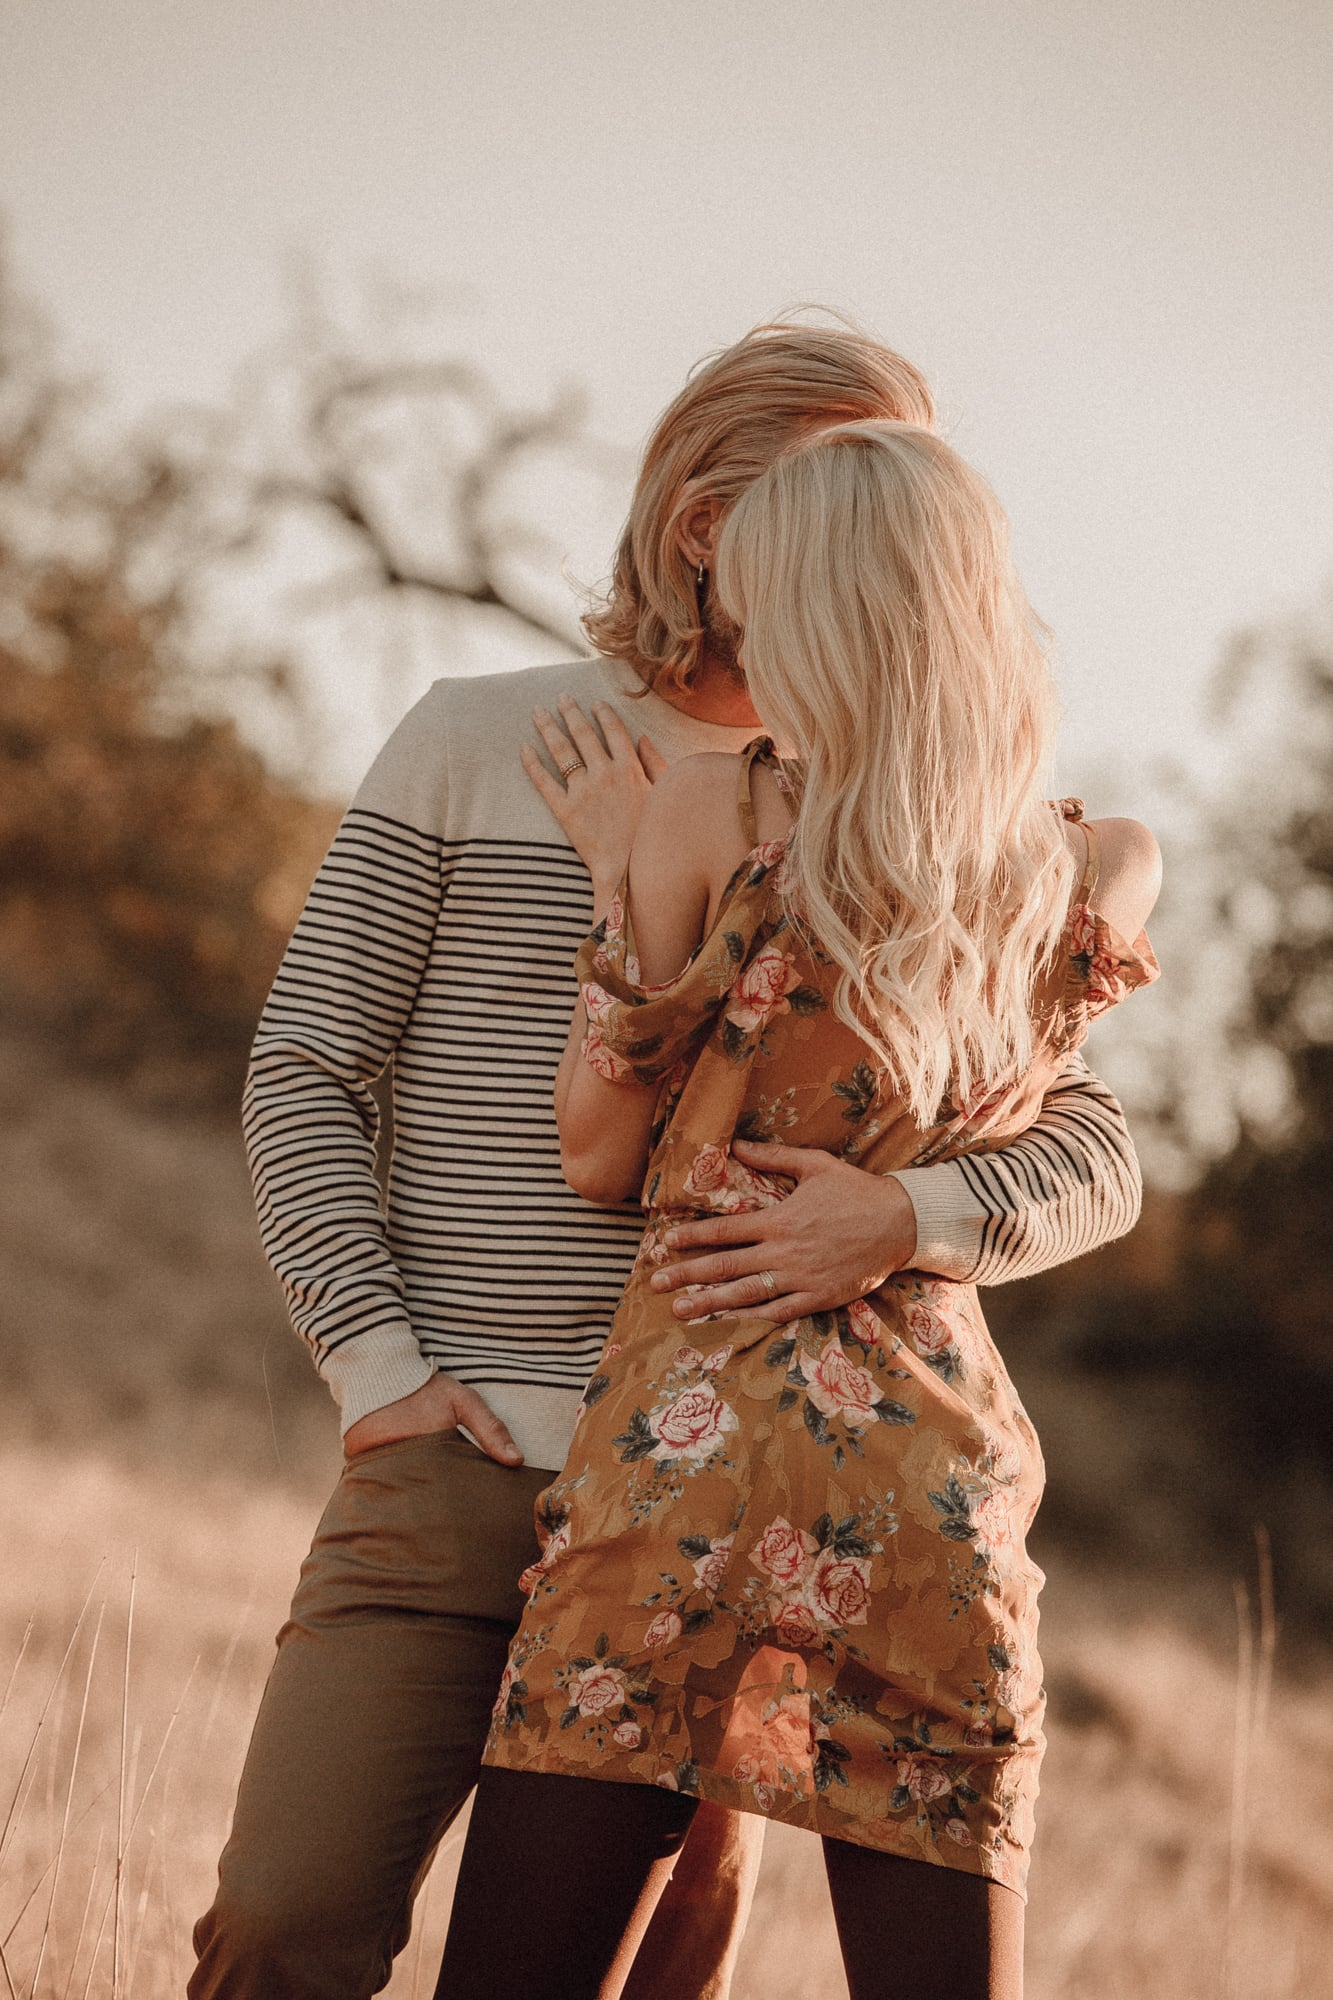 romantic engagement anniversary shoot in field